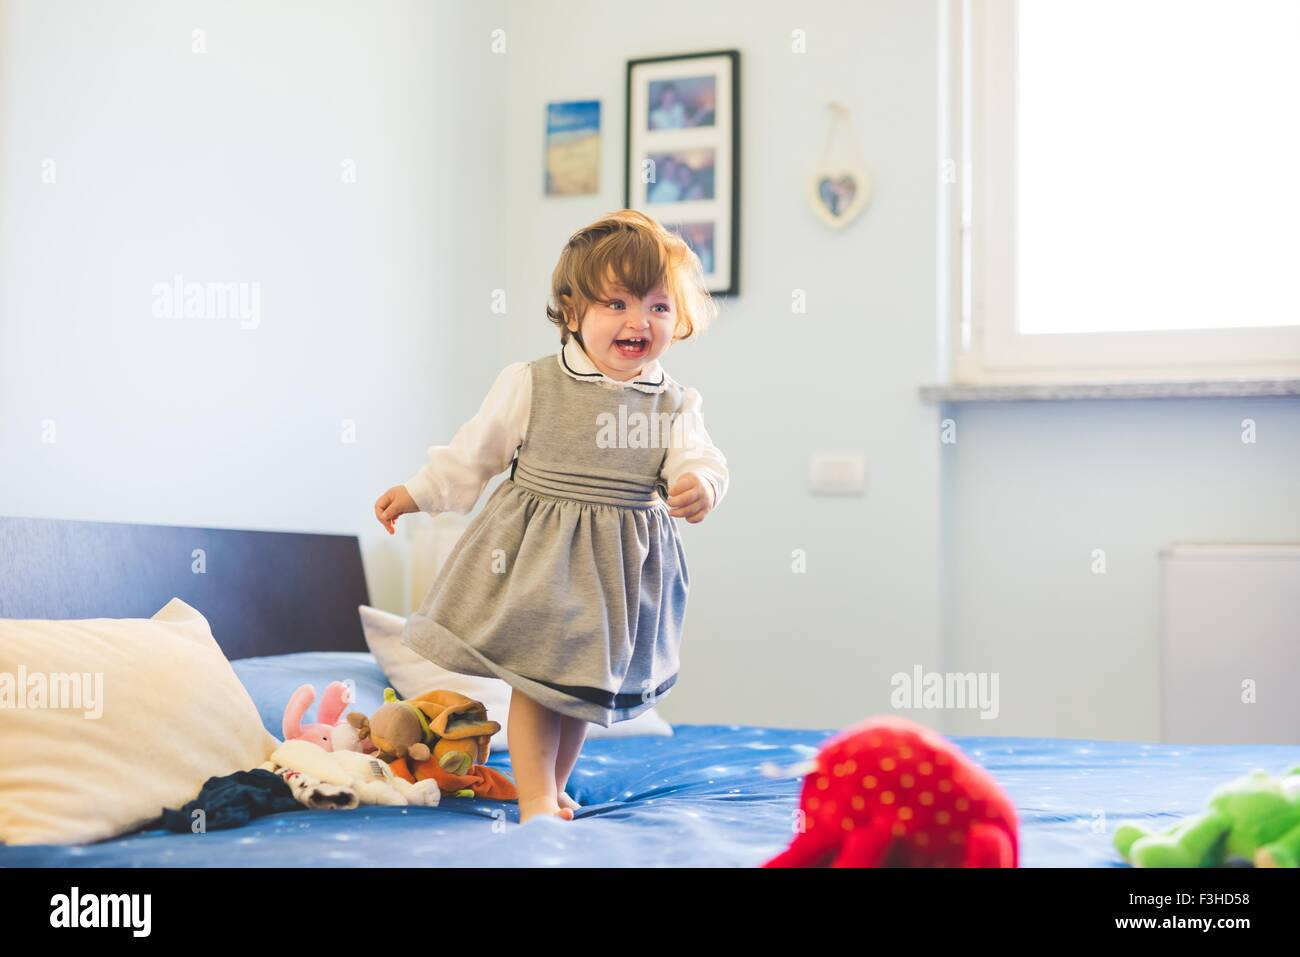 Cute female toddler toddling on bed - Stock Image